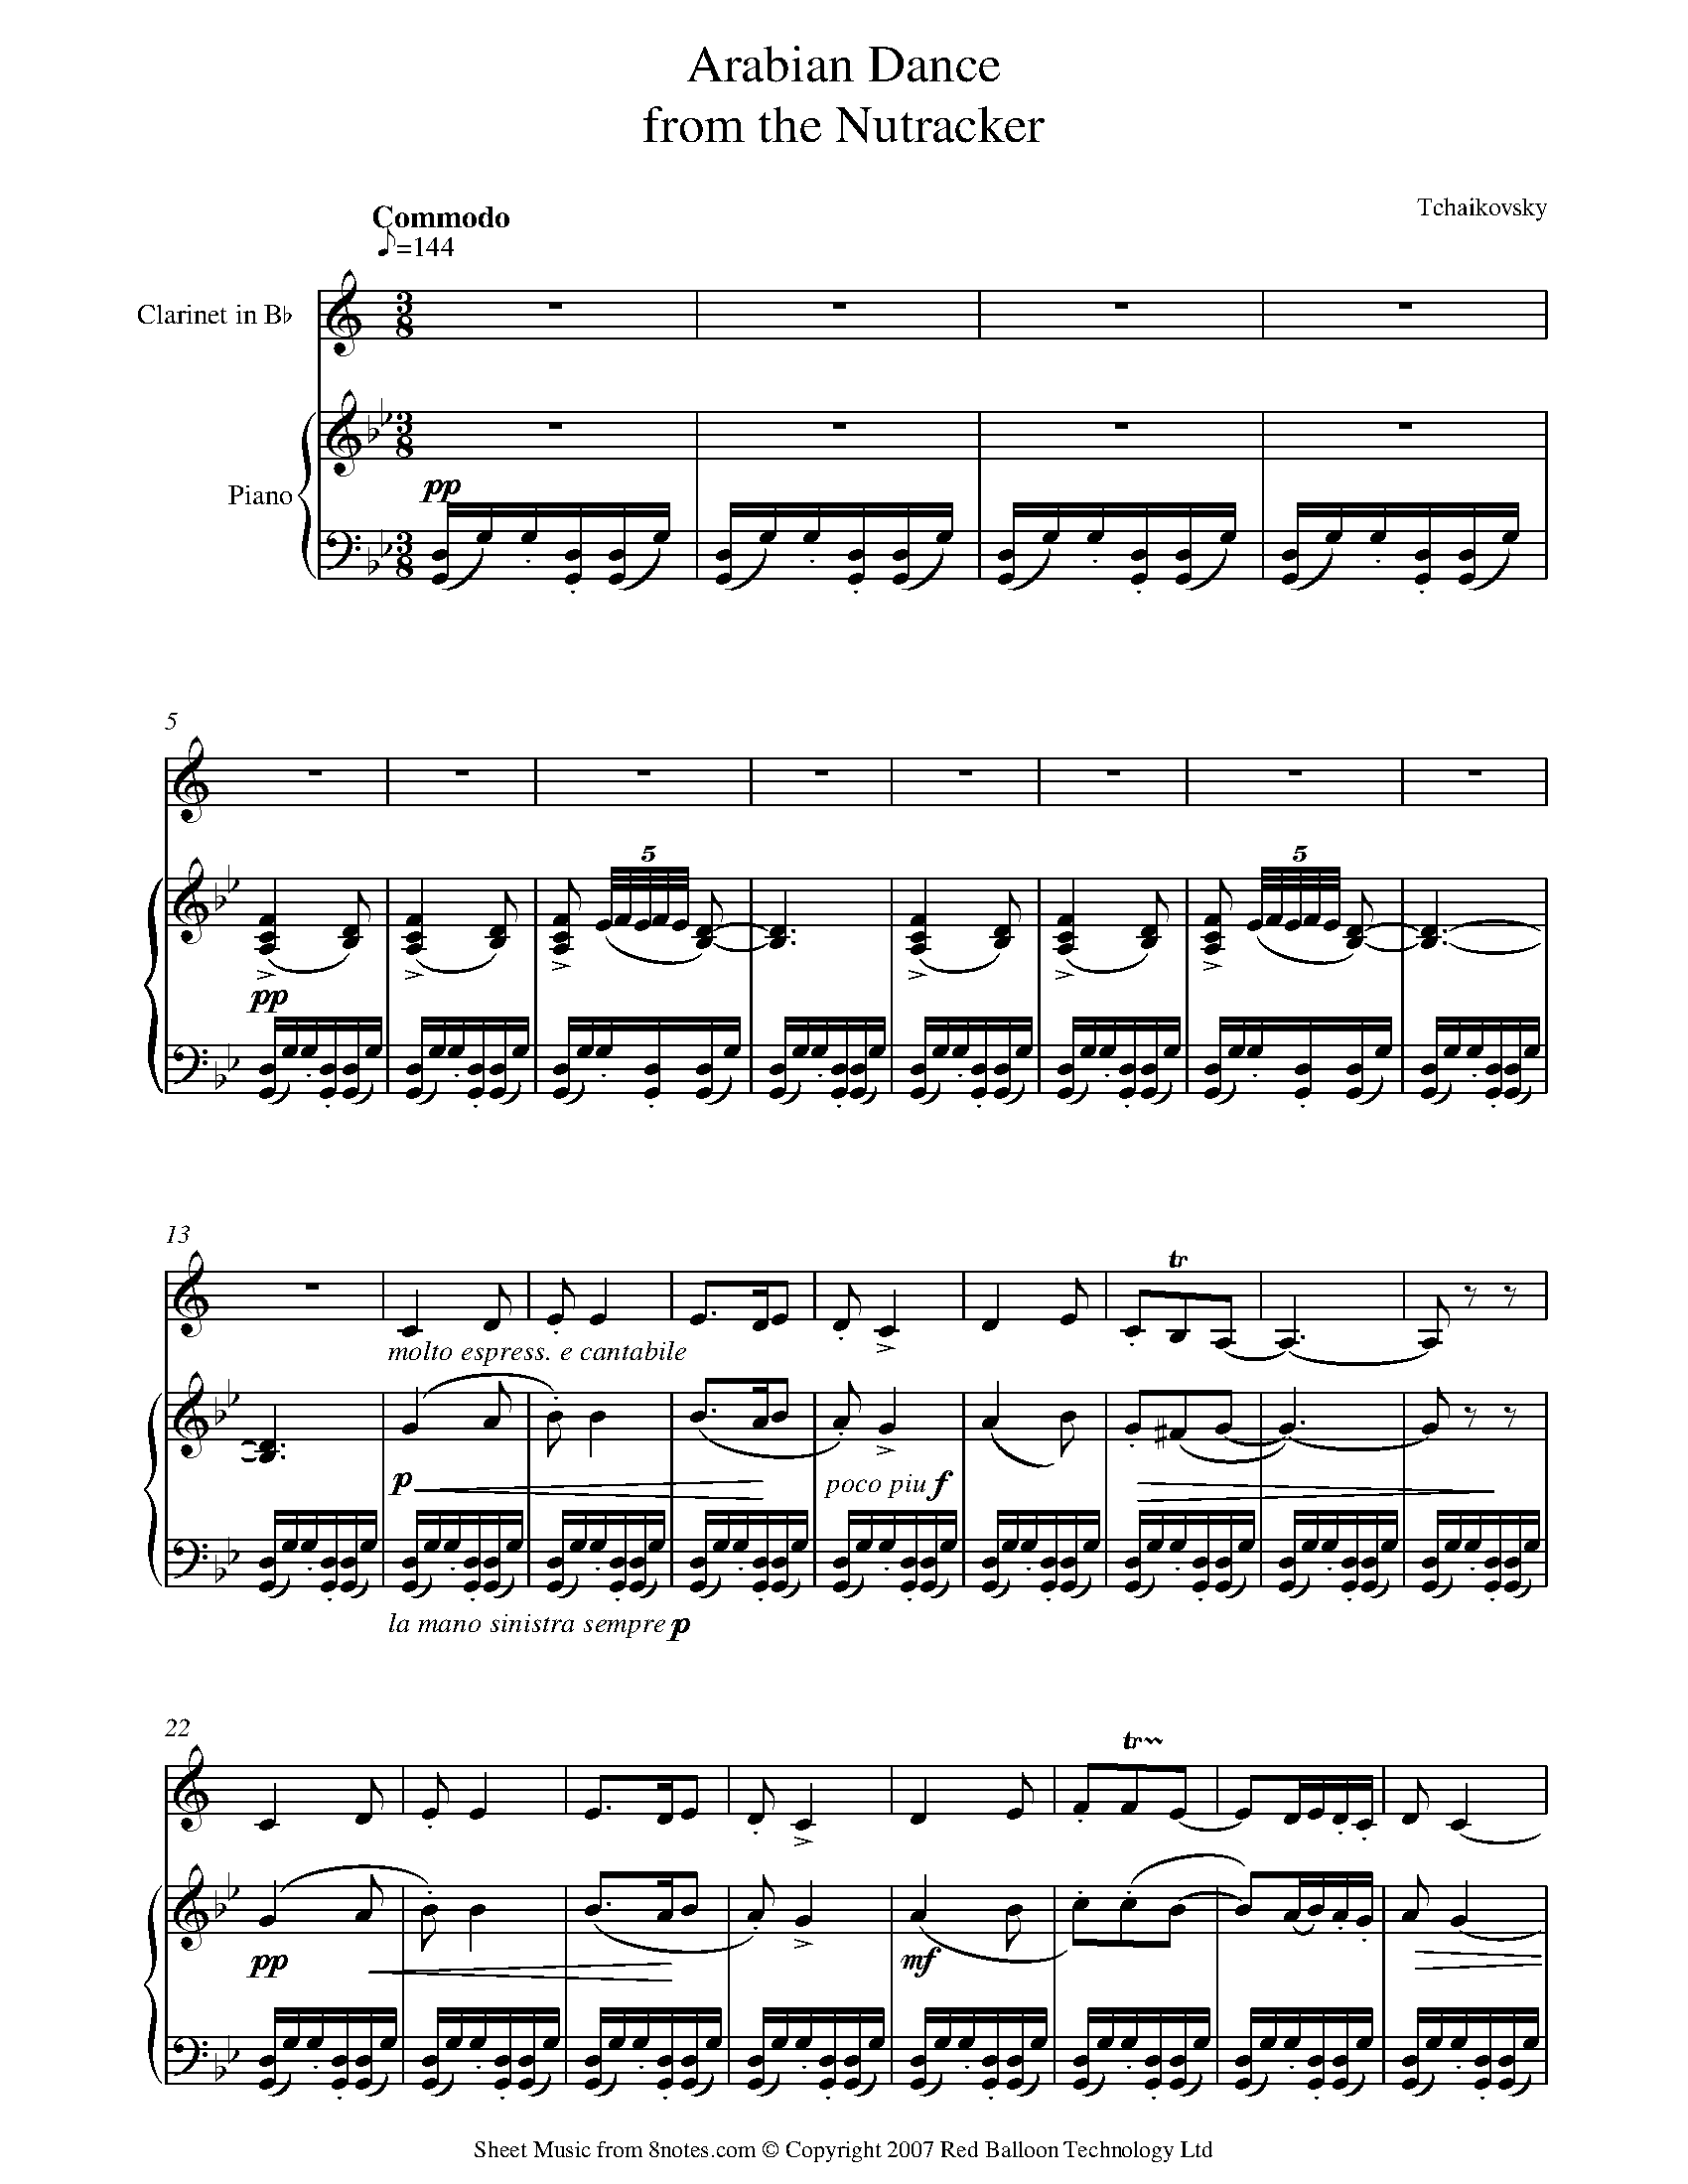 tchaikovsky - arabian dance from the nutcracker sheet music for clarinet -  8notes.com  8notes